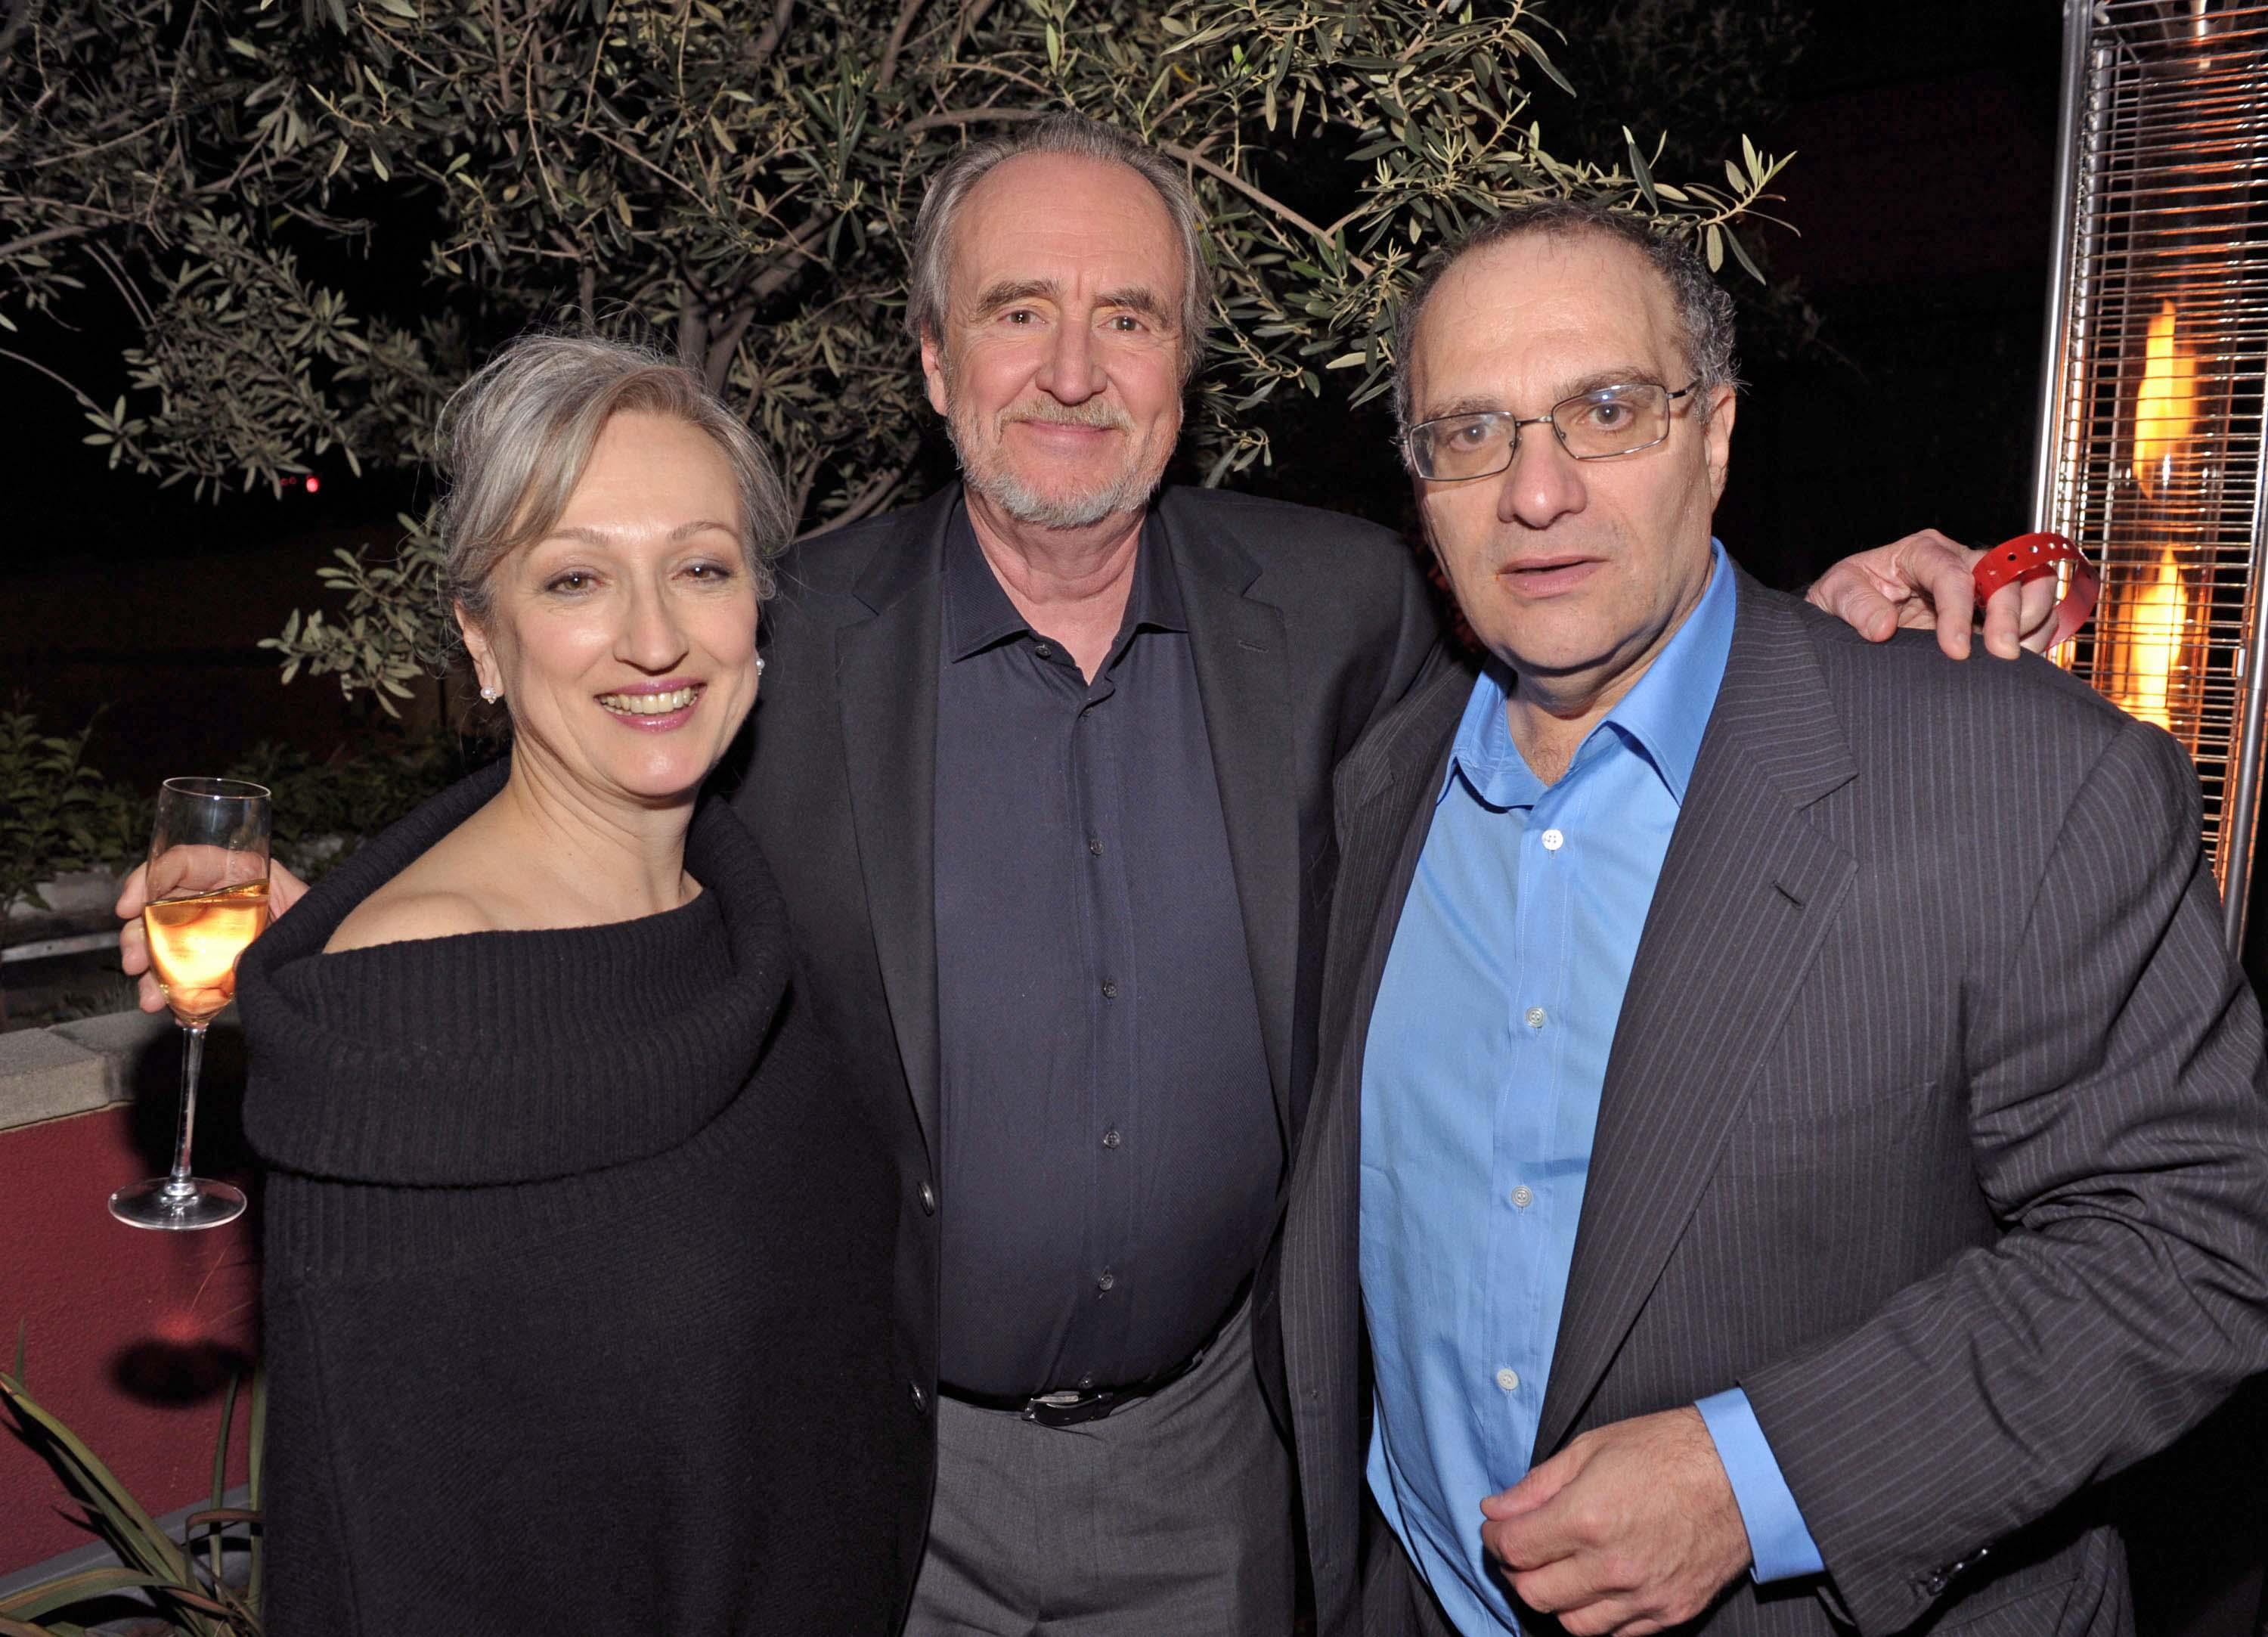 Bob Weinstein On Wes Craven And The Time The Director Said No To 'Scream'